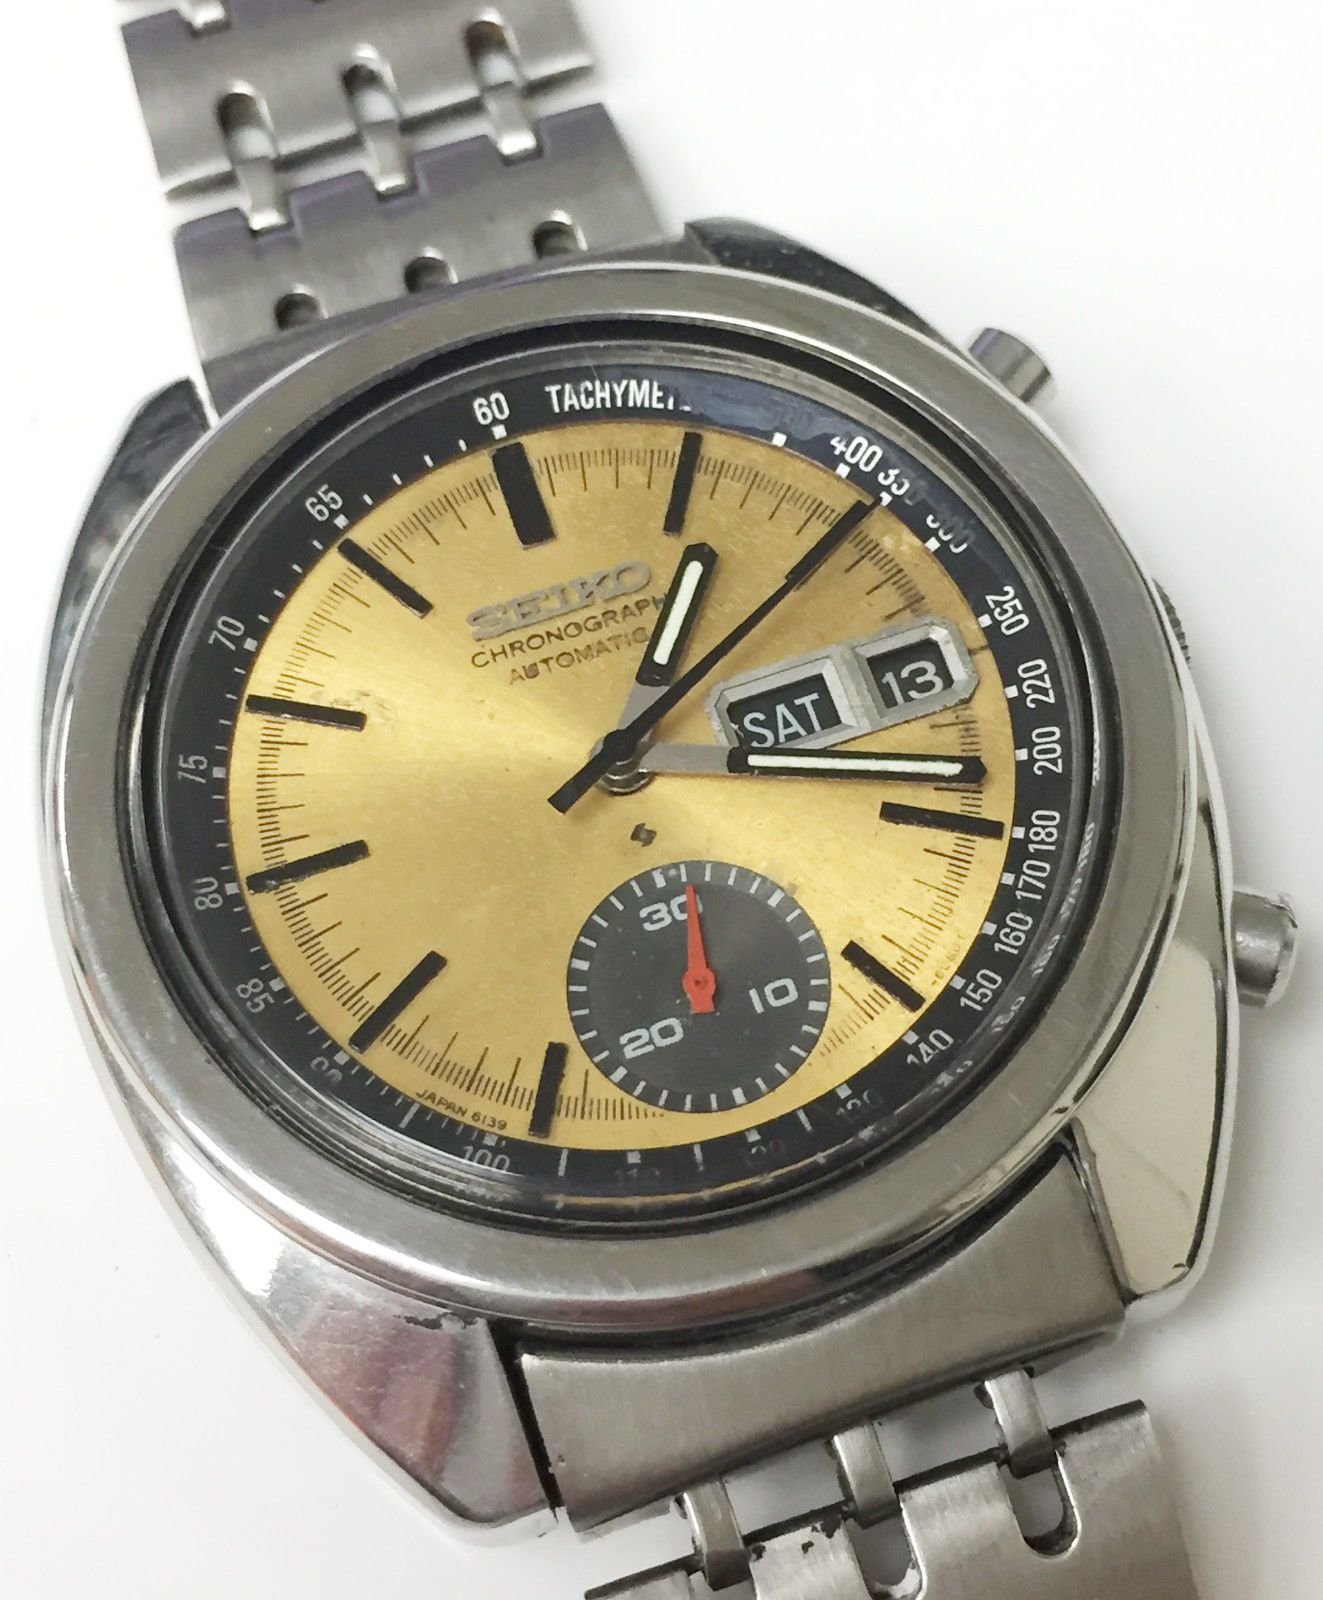 e4a541d07a9 Seiko Speed Timer 6139 8002 Automatic Chronograph Watch Original Genuine  Rare